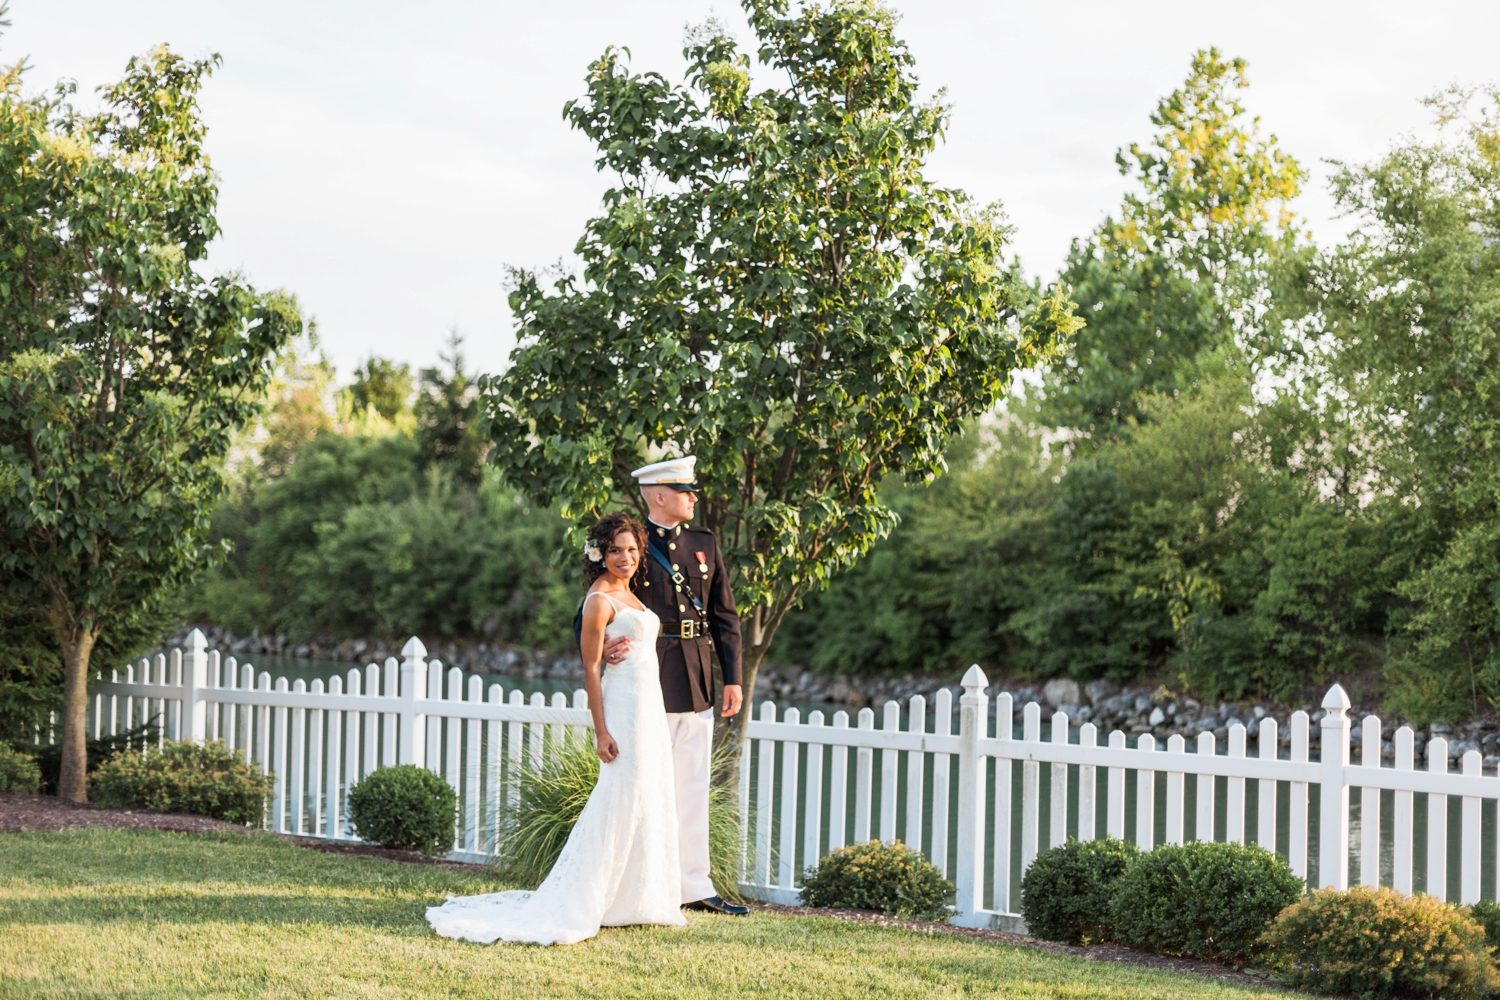 Wedding-at-The-Savannah-Center-West-Chester-Ohio-Photography-Chloe-Luka-Photography_7527.jpg